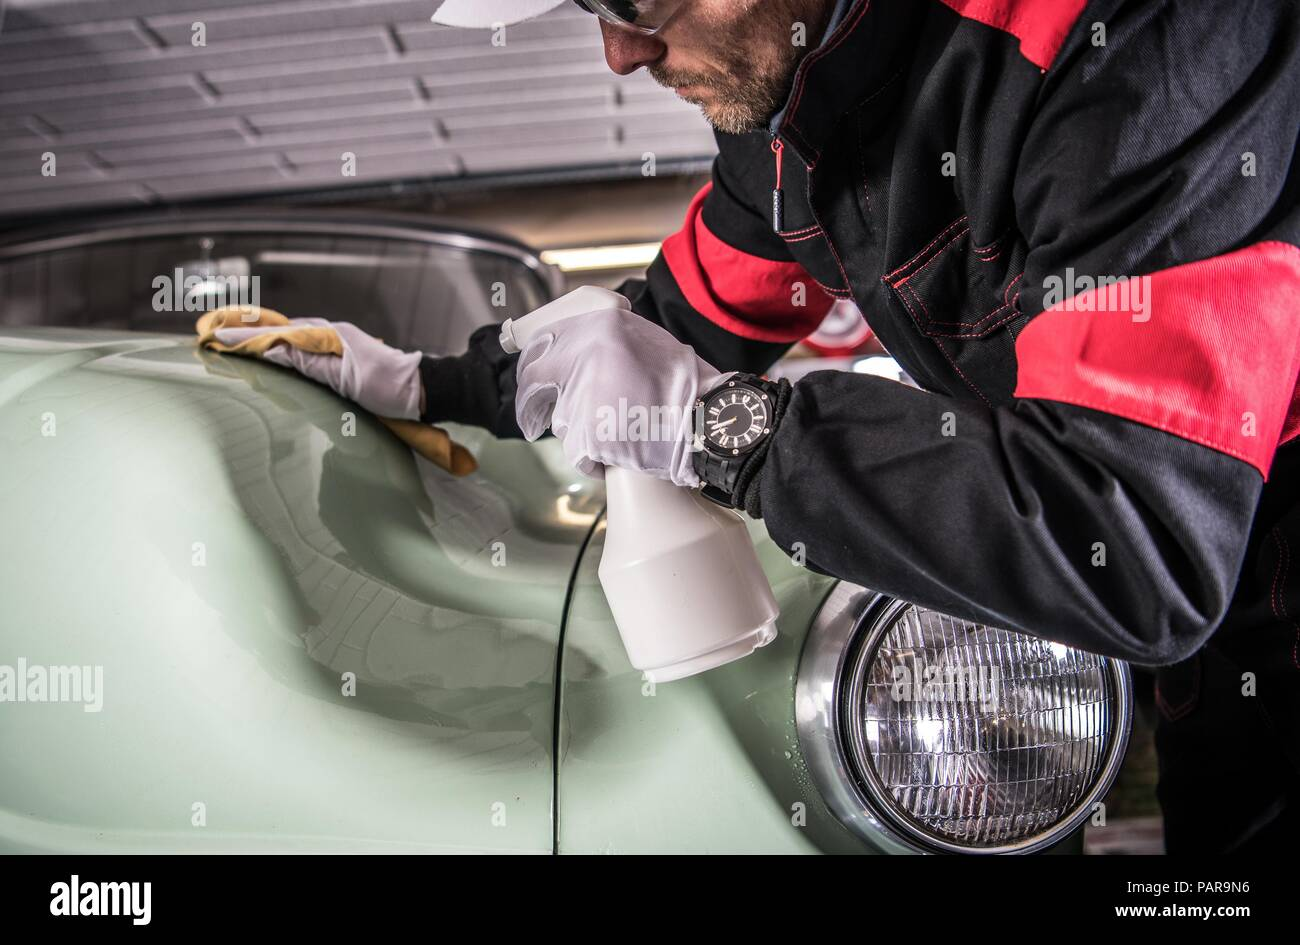 Men Cleaning His Car Body Using Professional Cleaner in Liquid. Vehicle Washing and Detailing Theme. Classic Car. - Stock Image